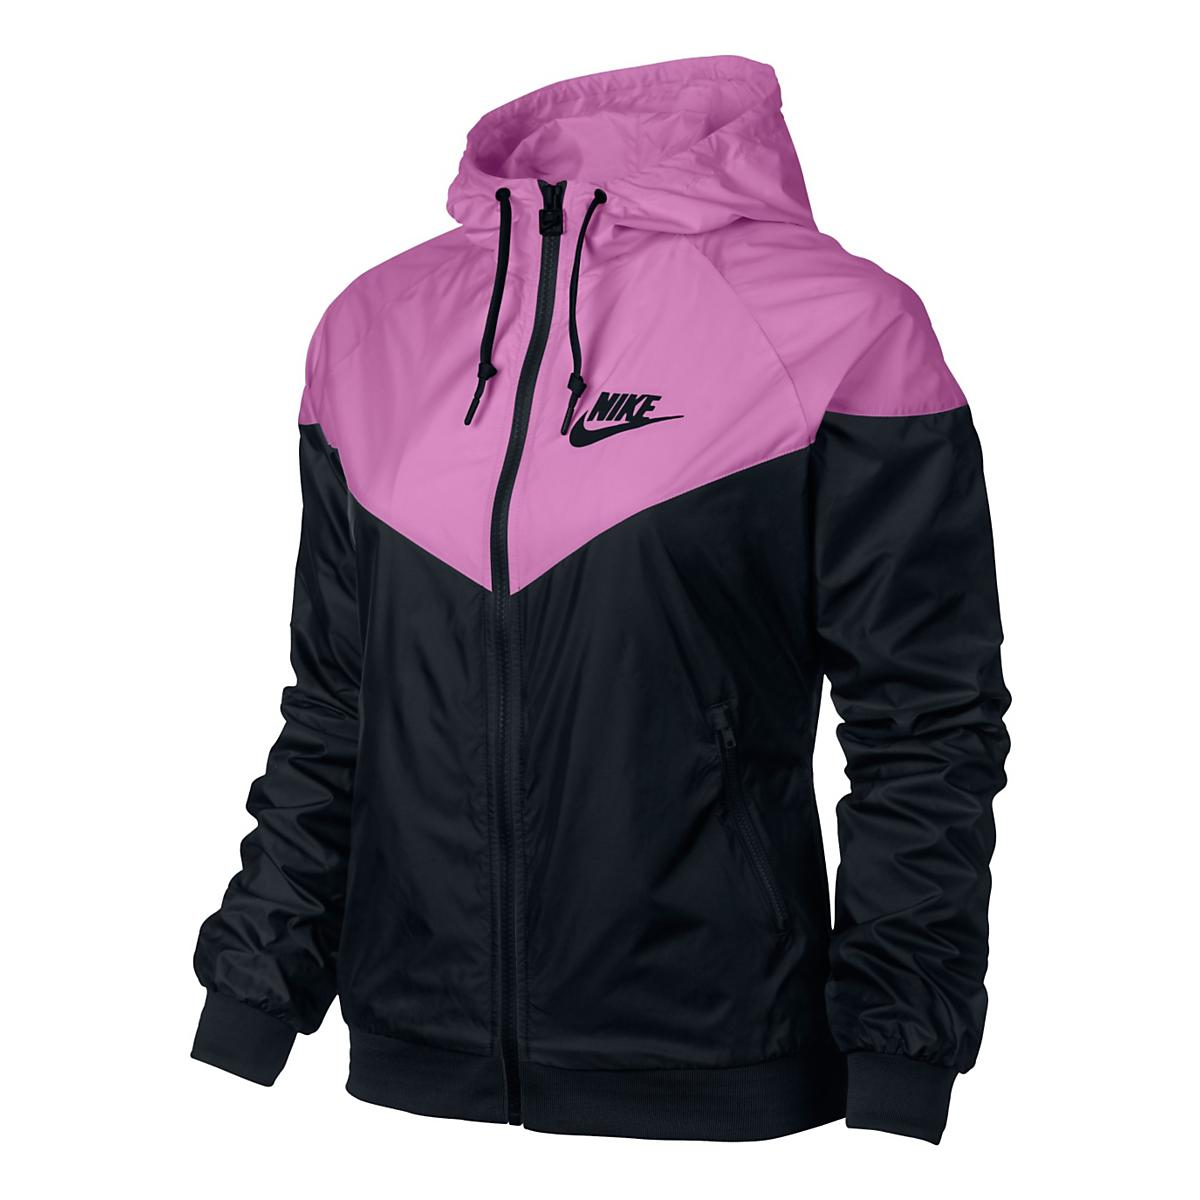 Womens nike windrunner jacket